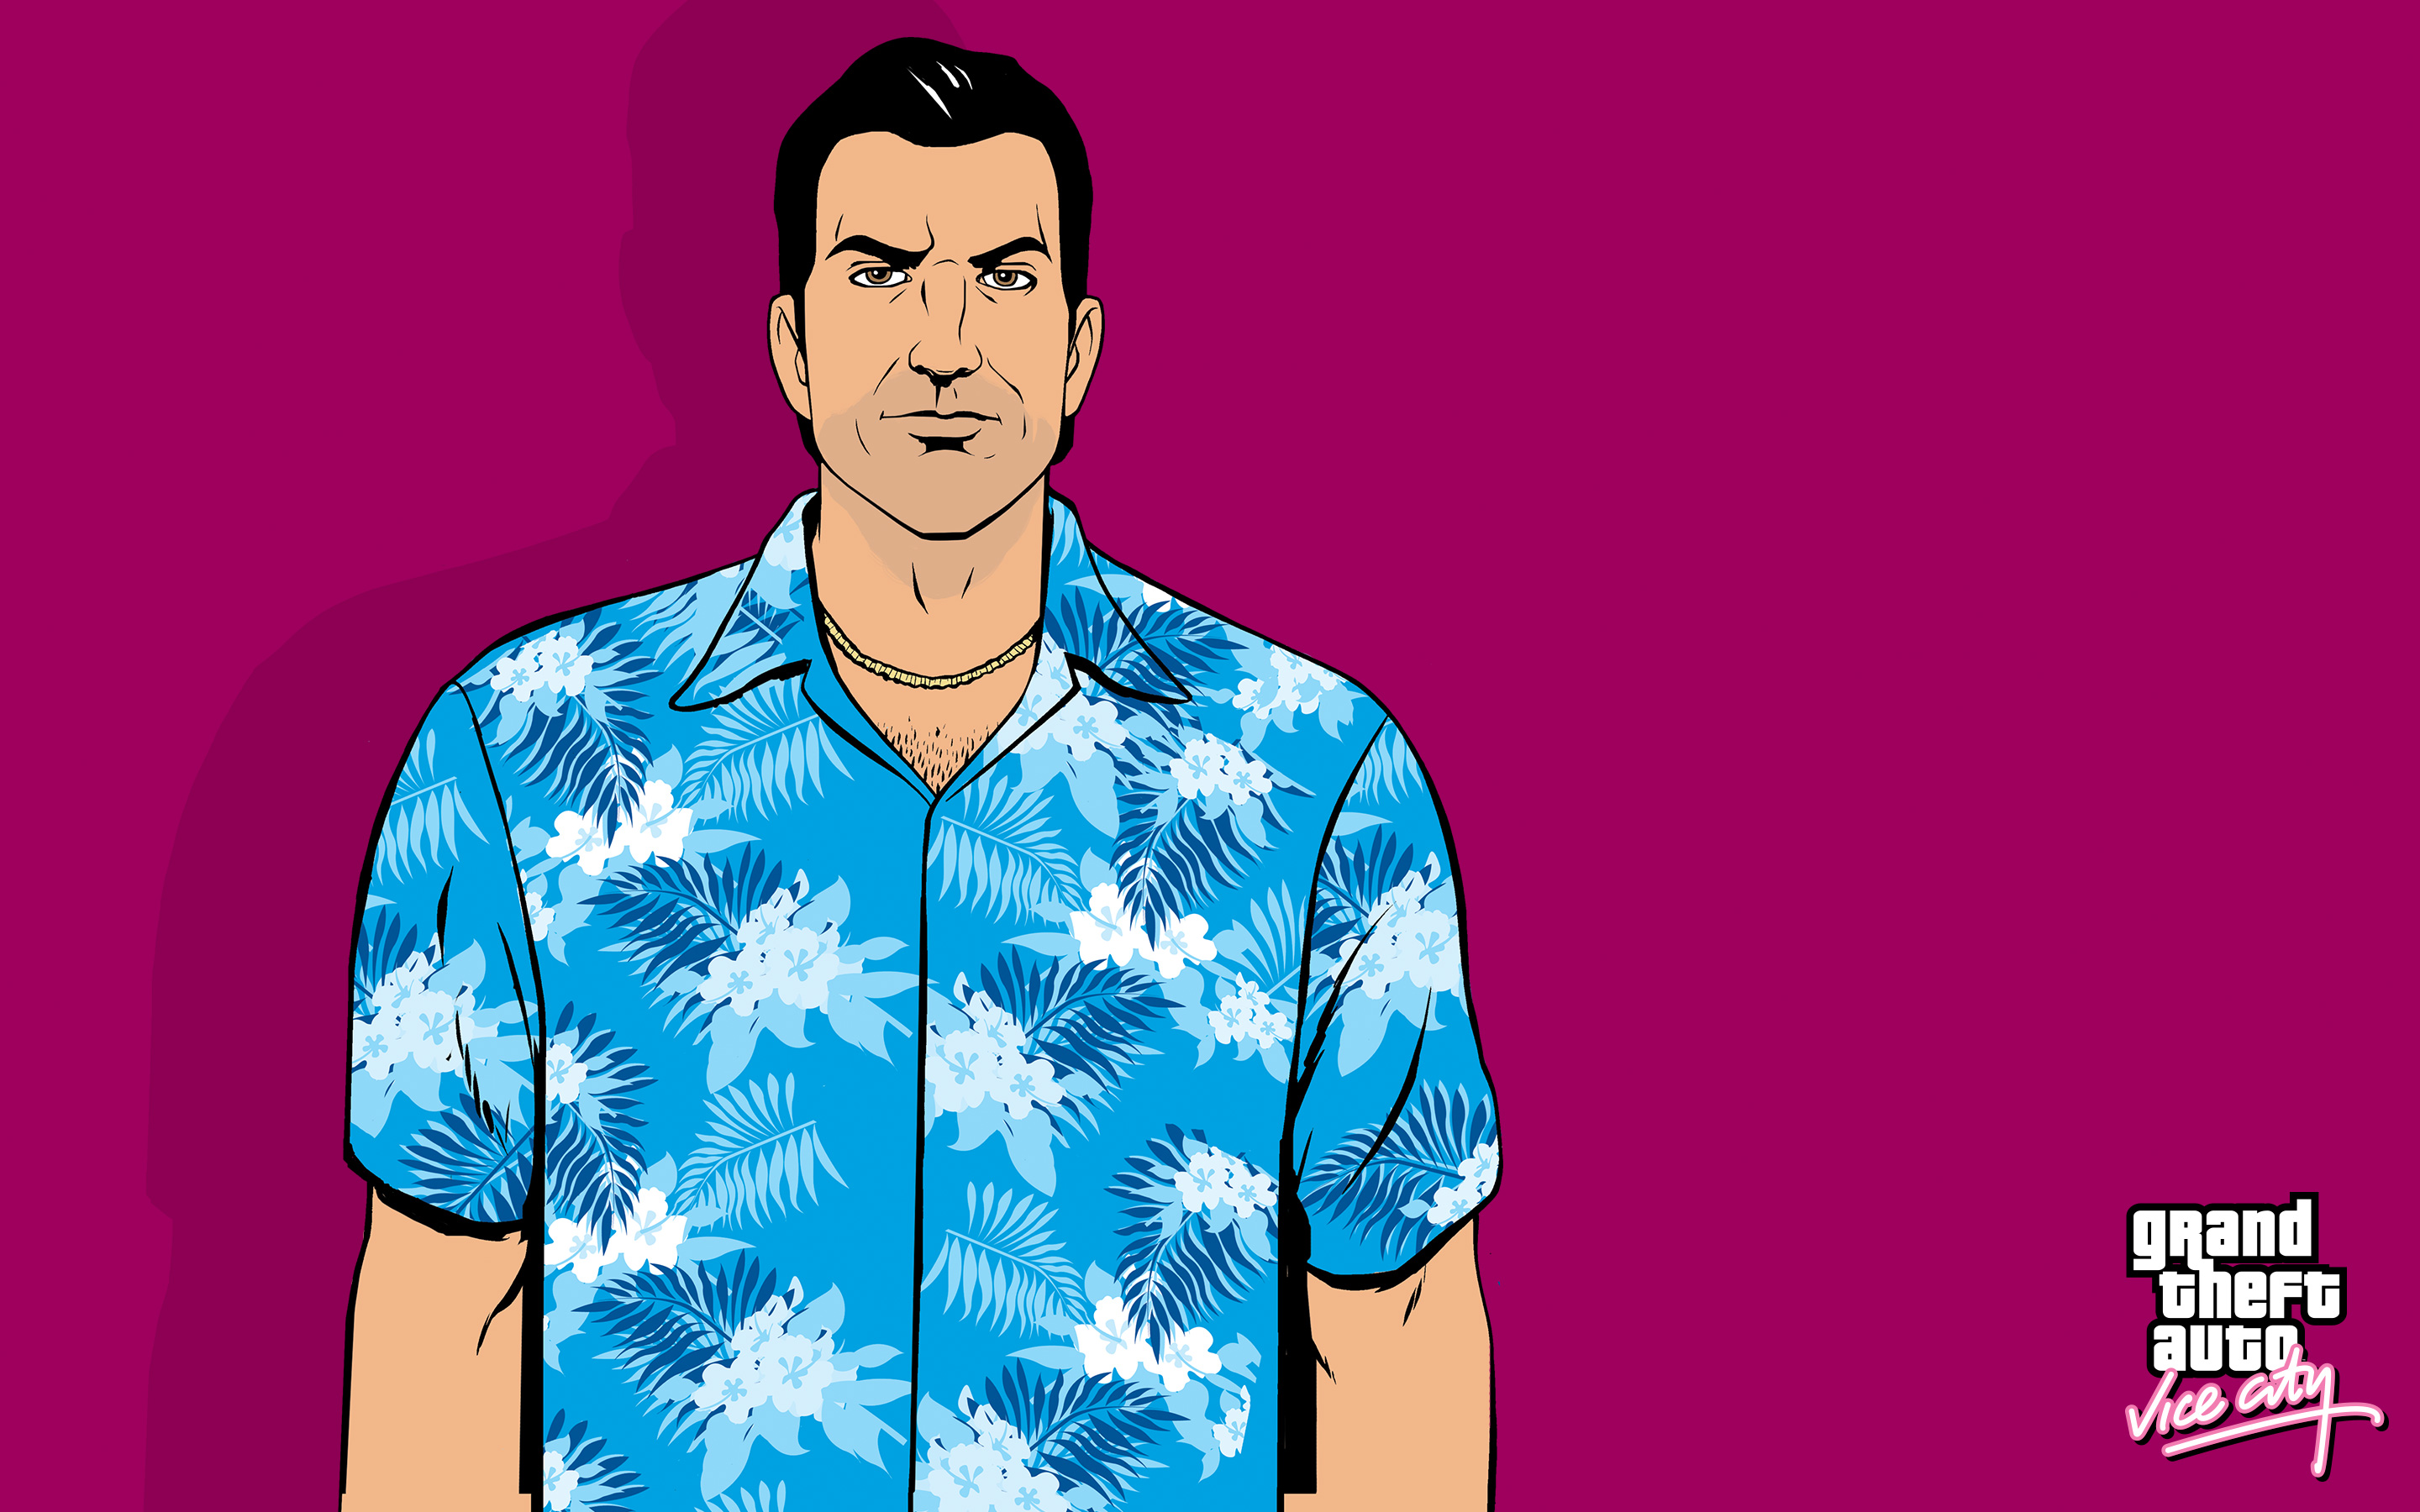 File:TommyVercetti-Artwork.jpg